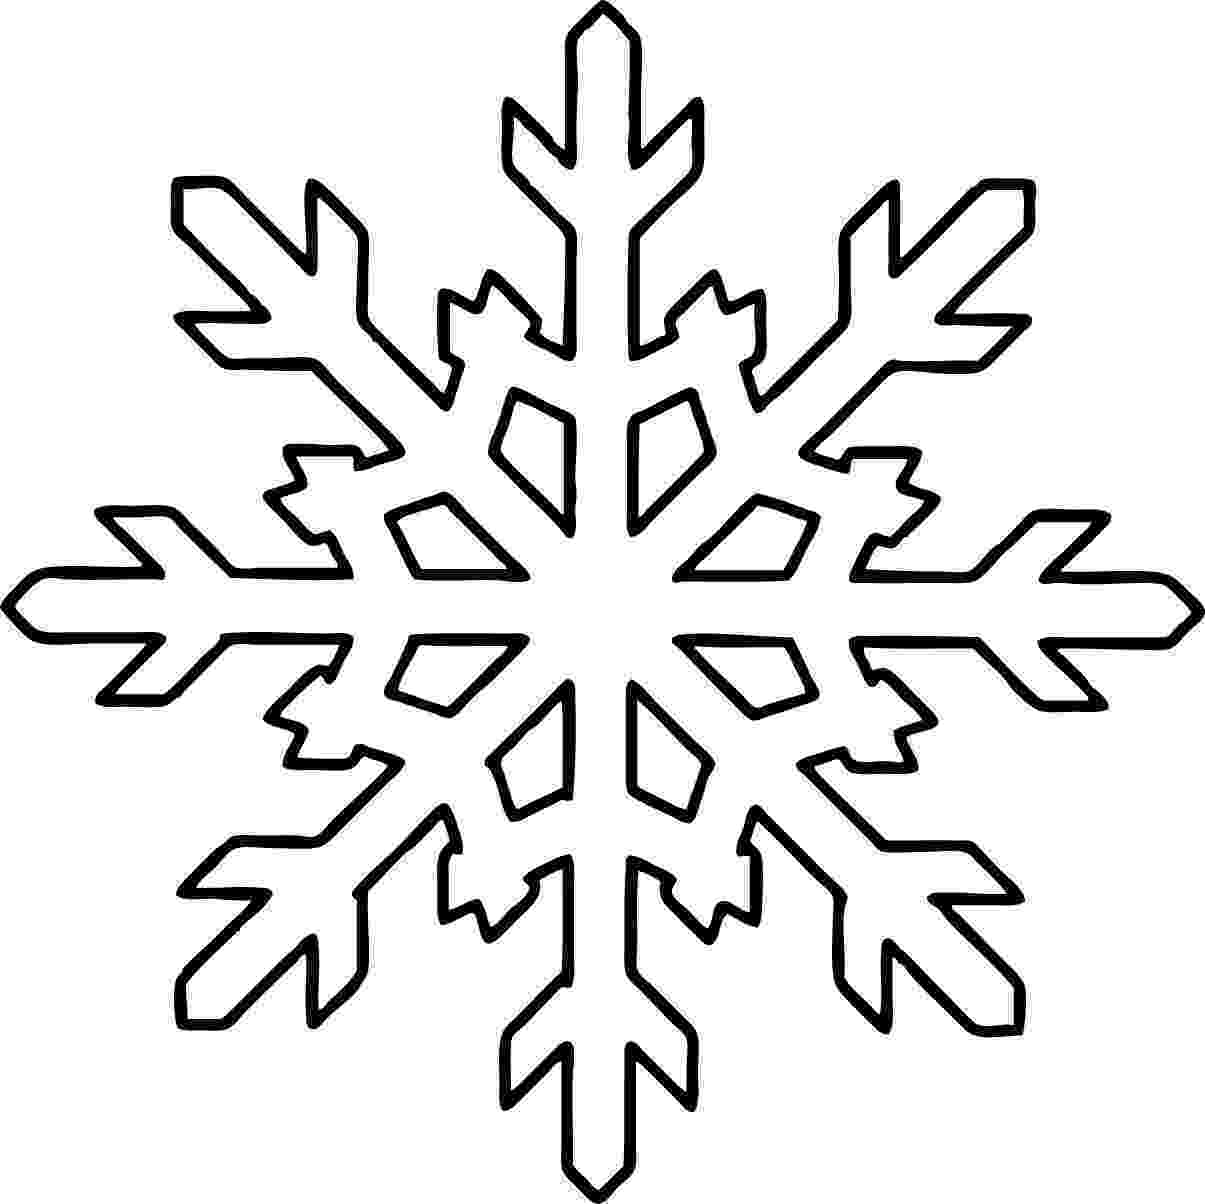 snow flake coloring pages free printable snowflake coloring pages for kids coloring flake pages snow 1 1